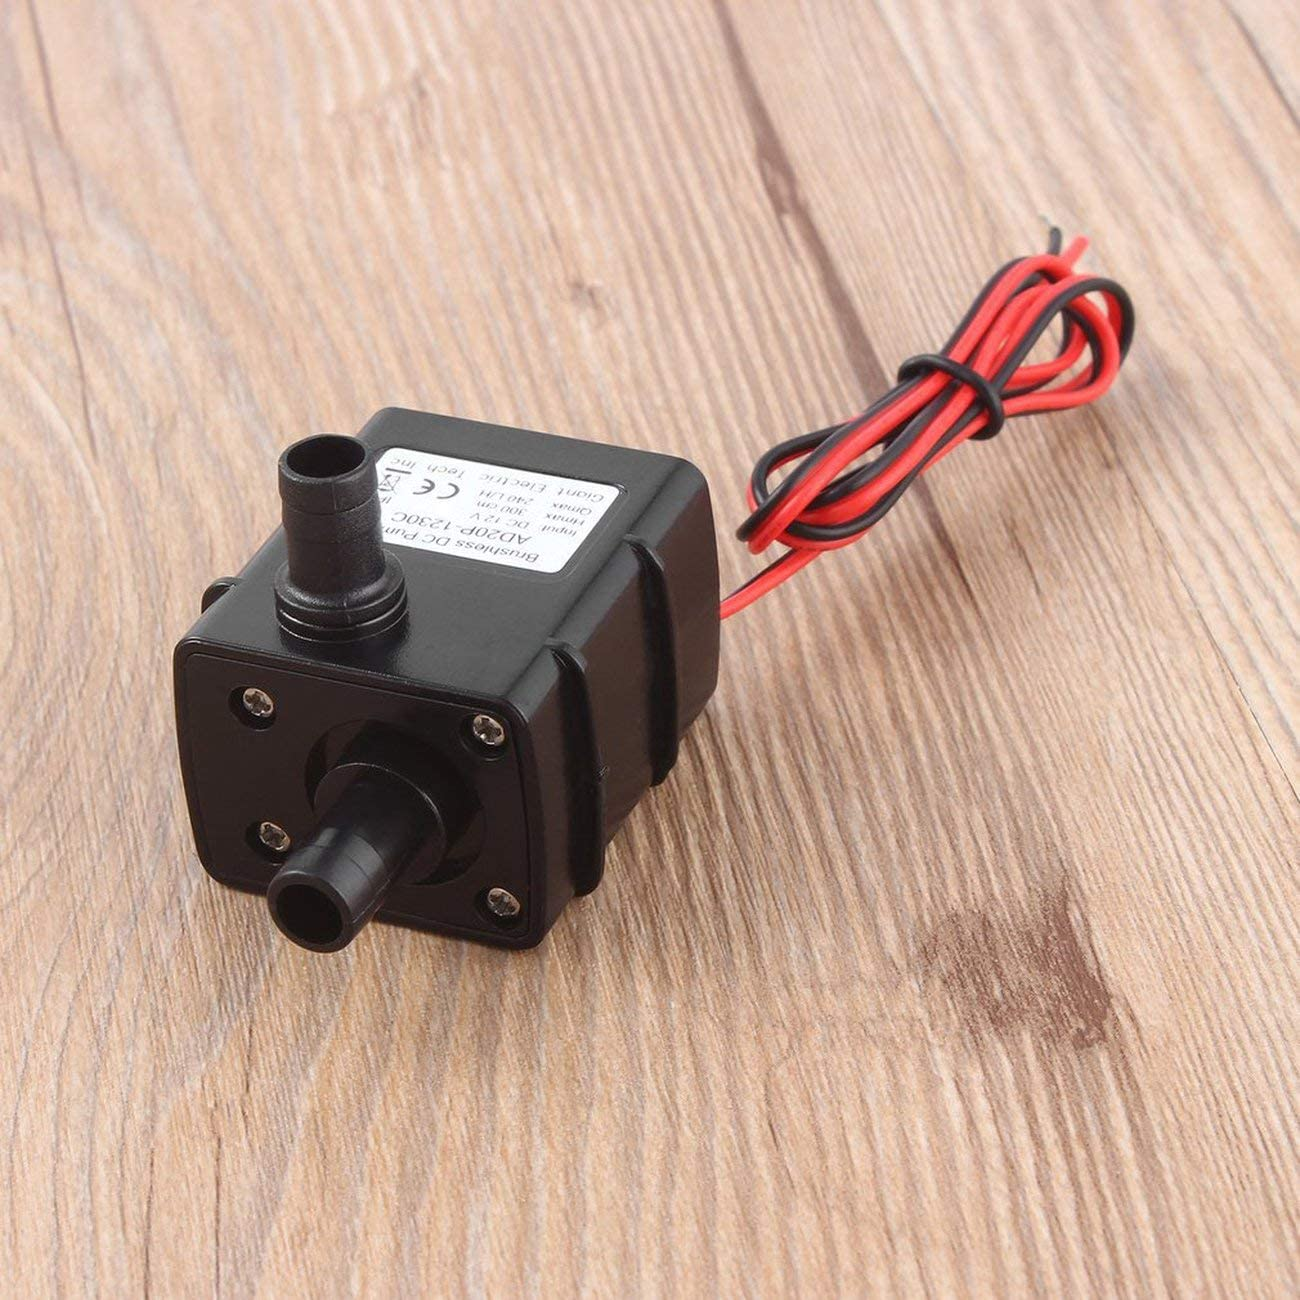 JIUY Ultra-Quiet Mini DC 12V 3M 240L//H Brushless Motor Submersible Water Pump New Garden Pond Submersible Water Pump Black